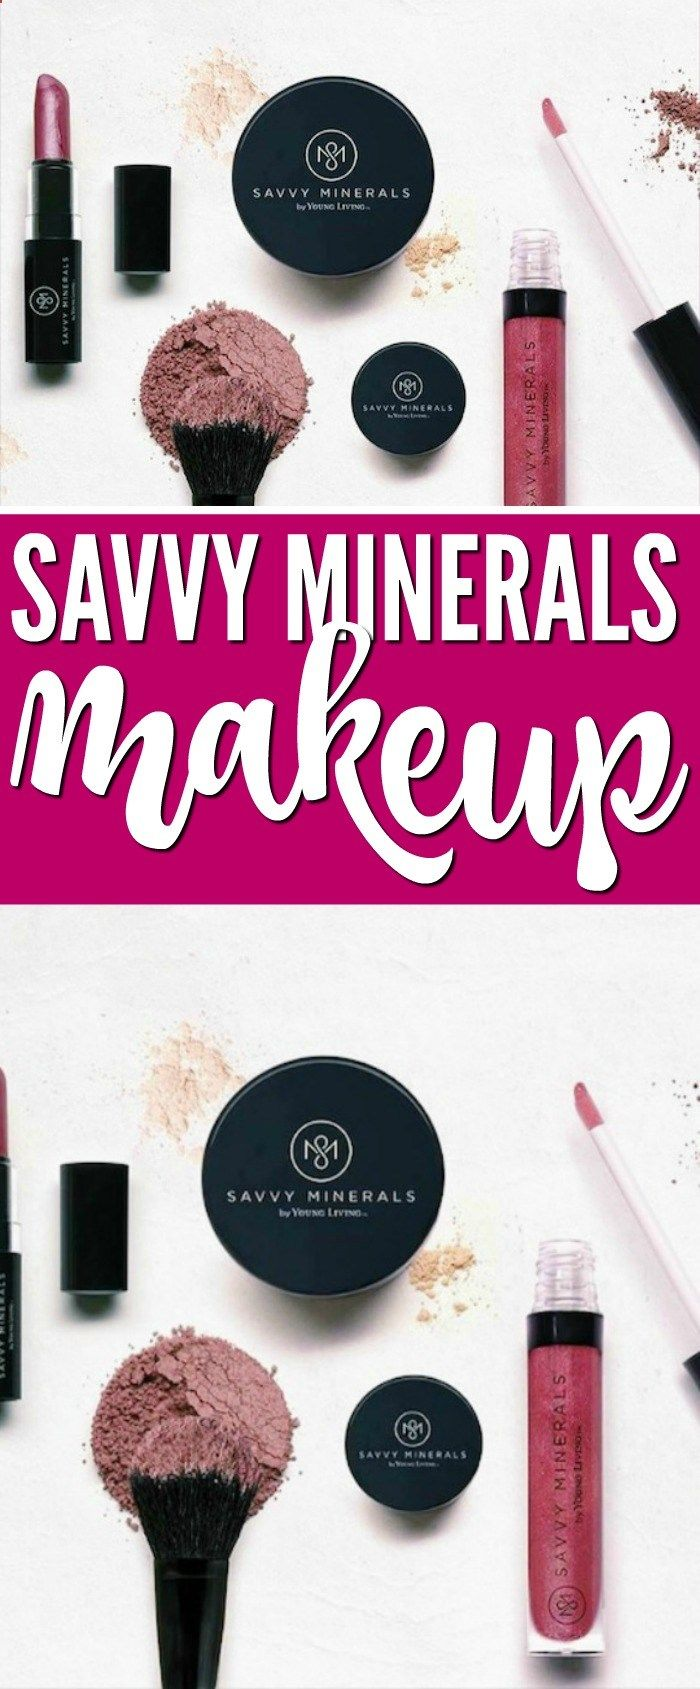 Savvy Minerals Makeup by Young Living! A new, Everyday